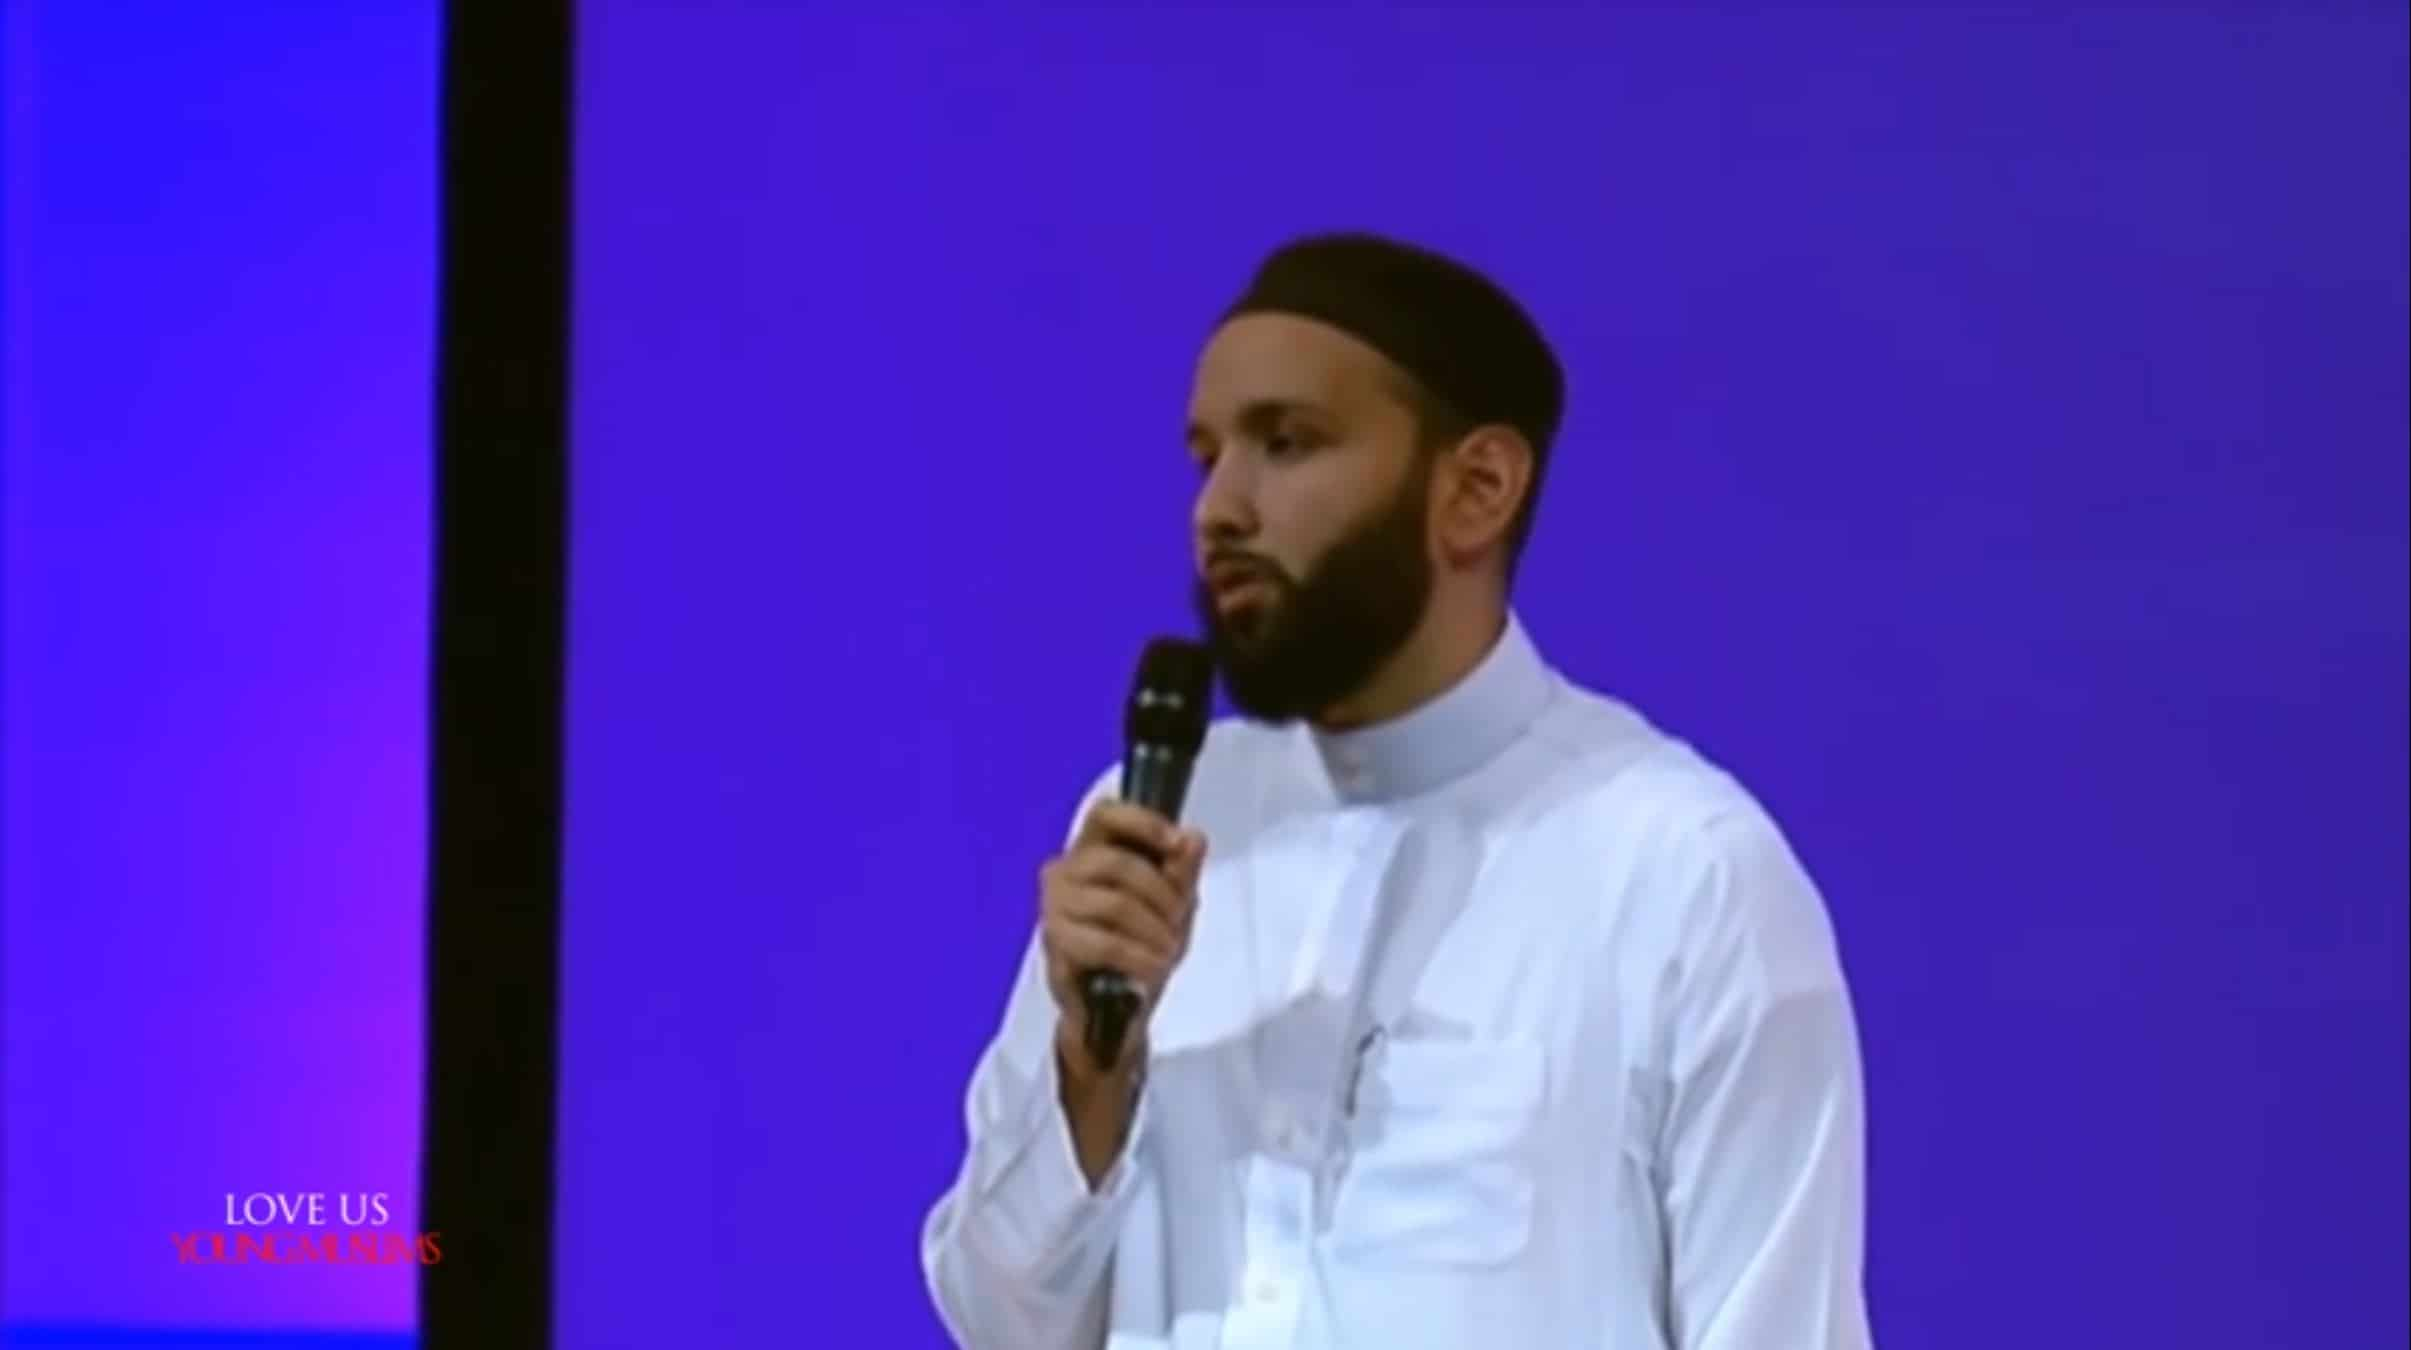 Omar Suleiman – My Mom: My Role Model